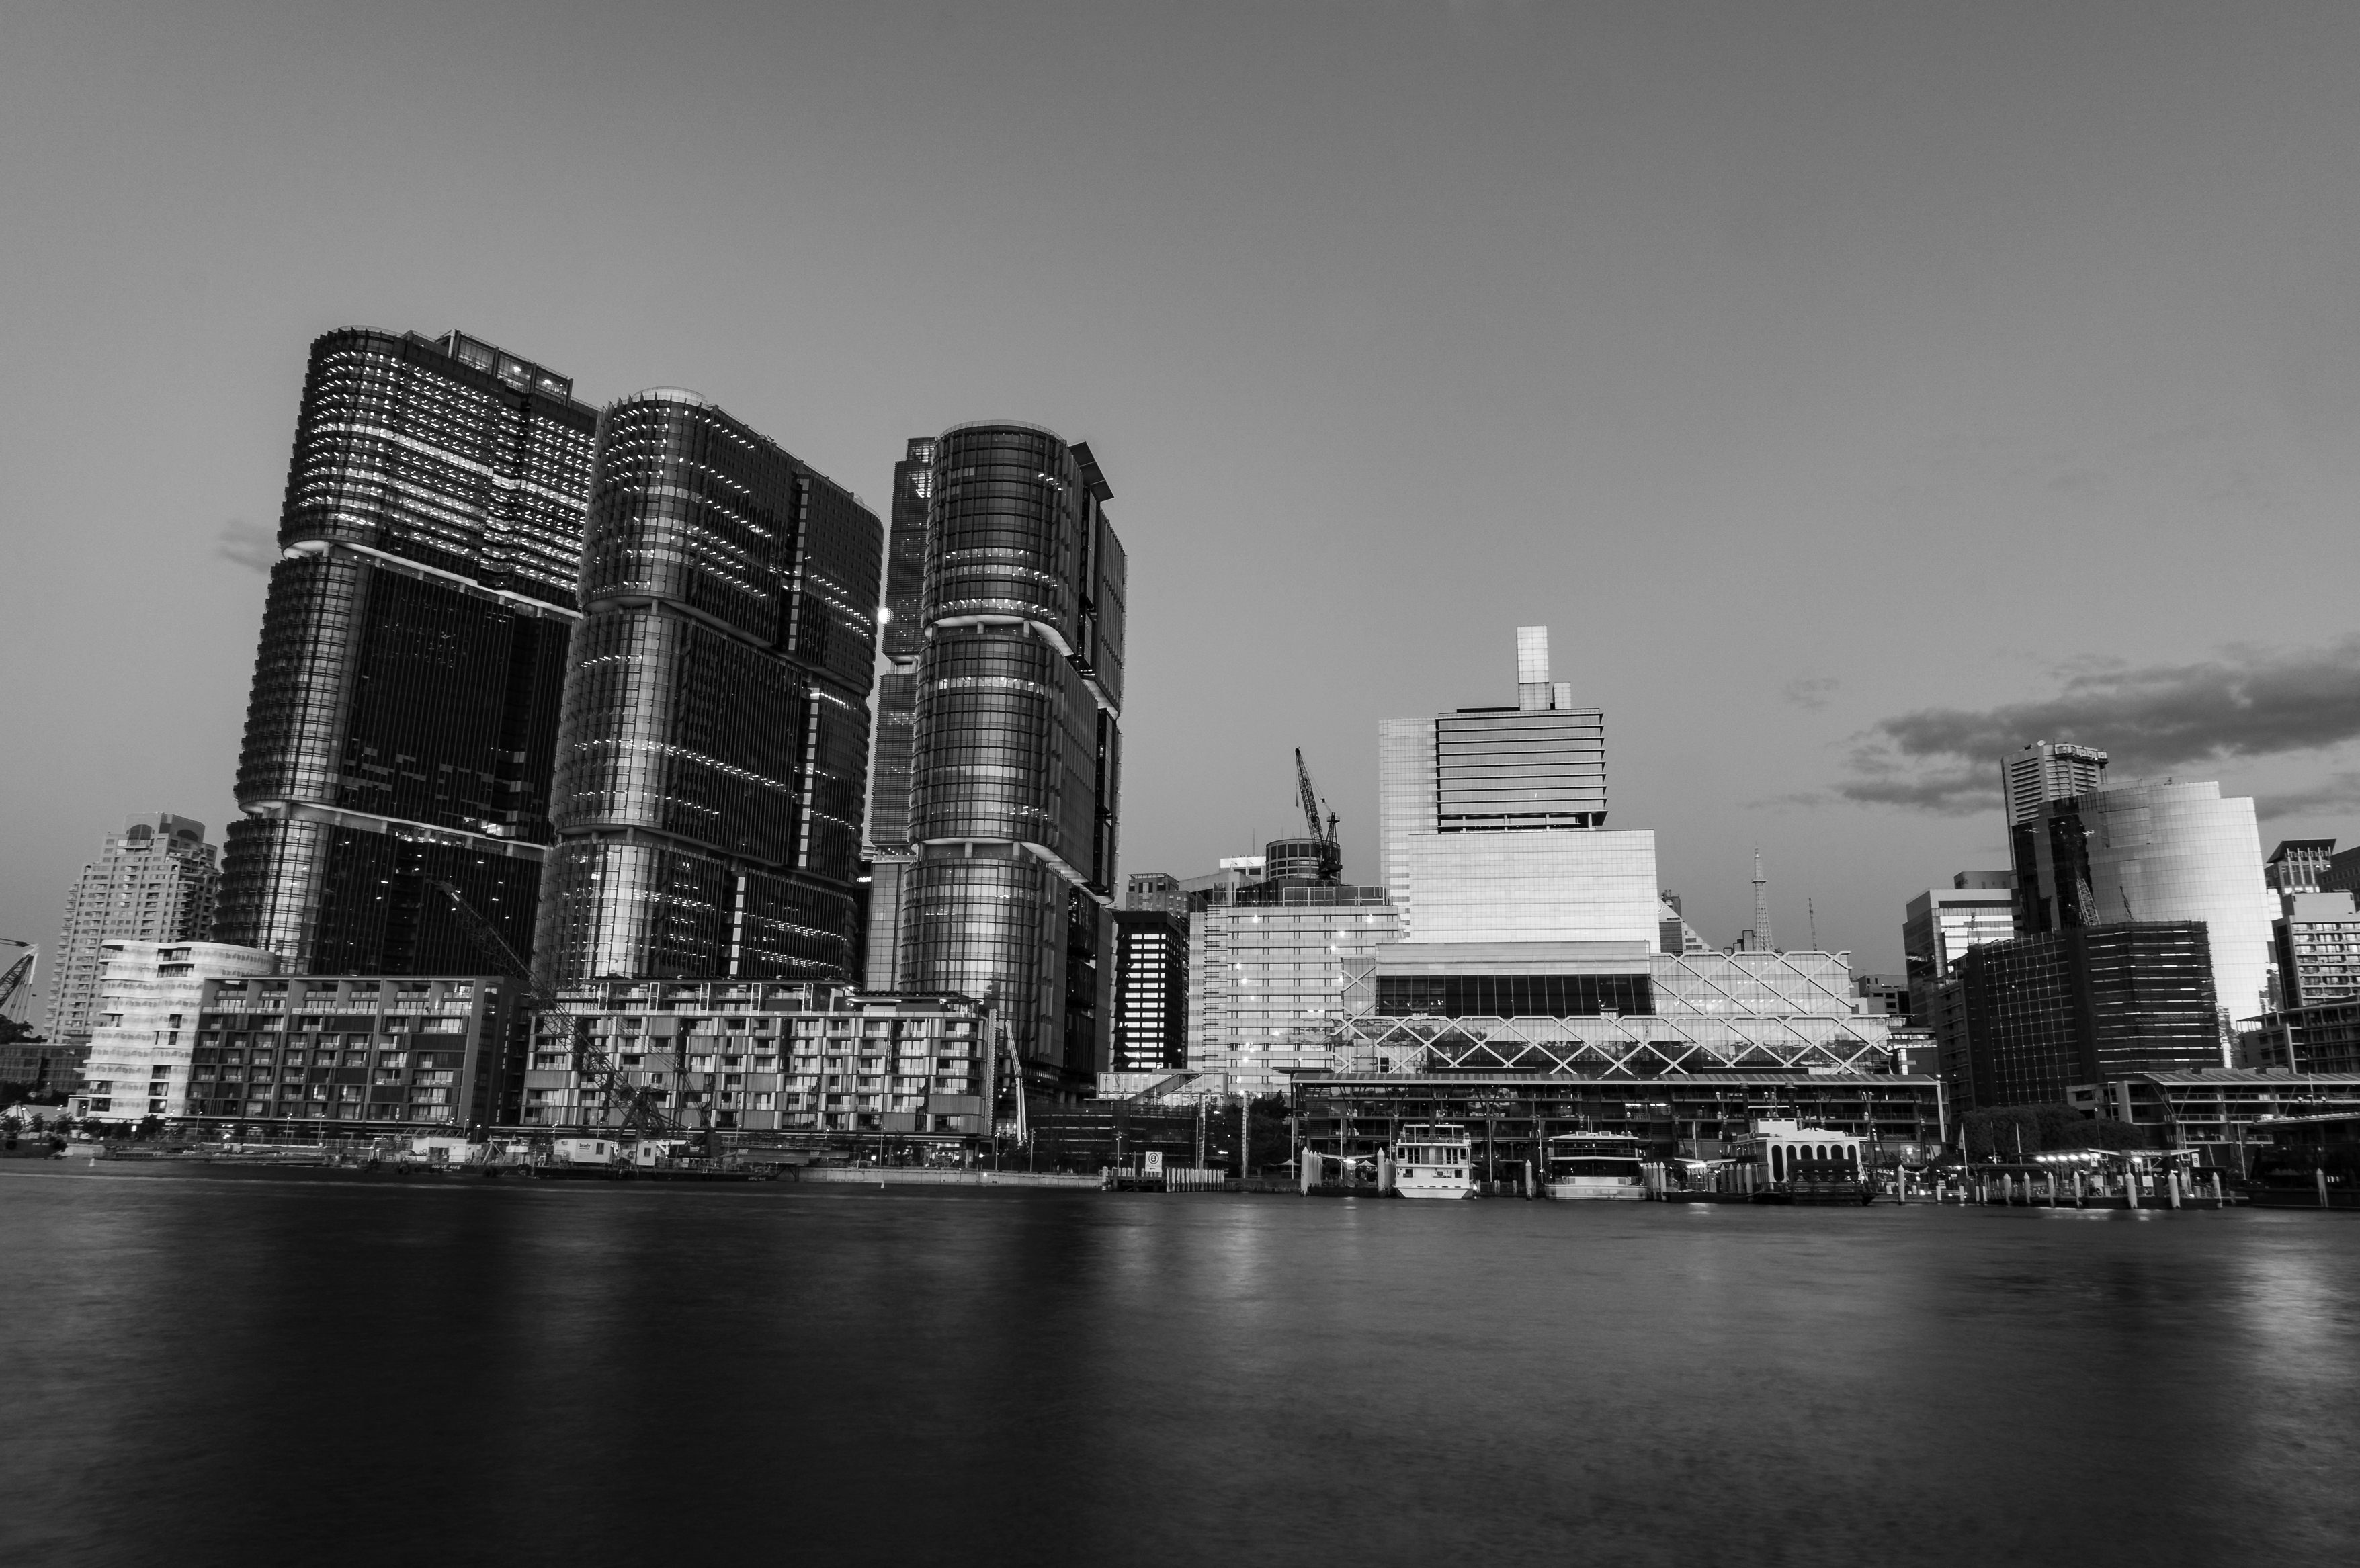 Barangaroo Point And Darling Harbour At Dusk